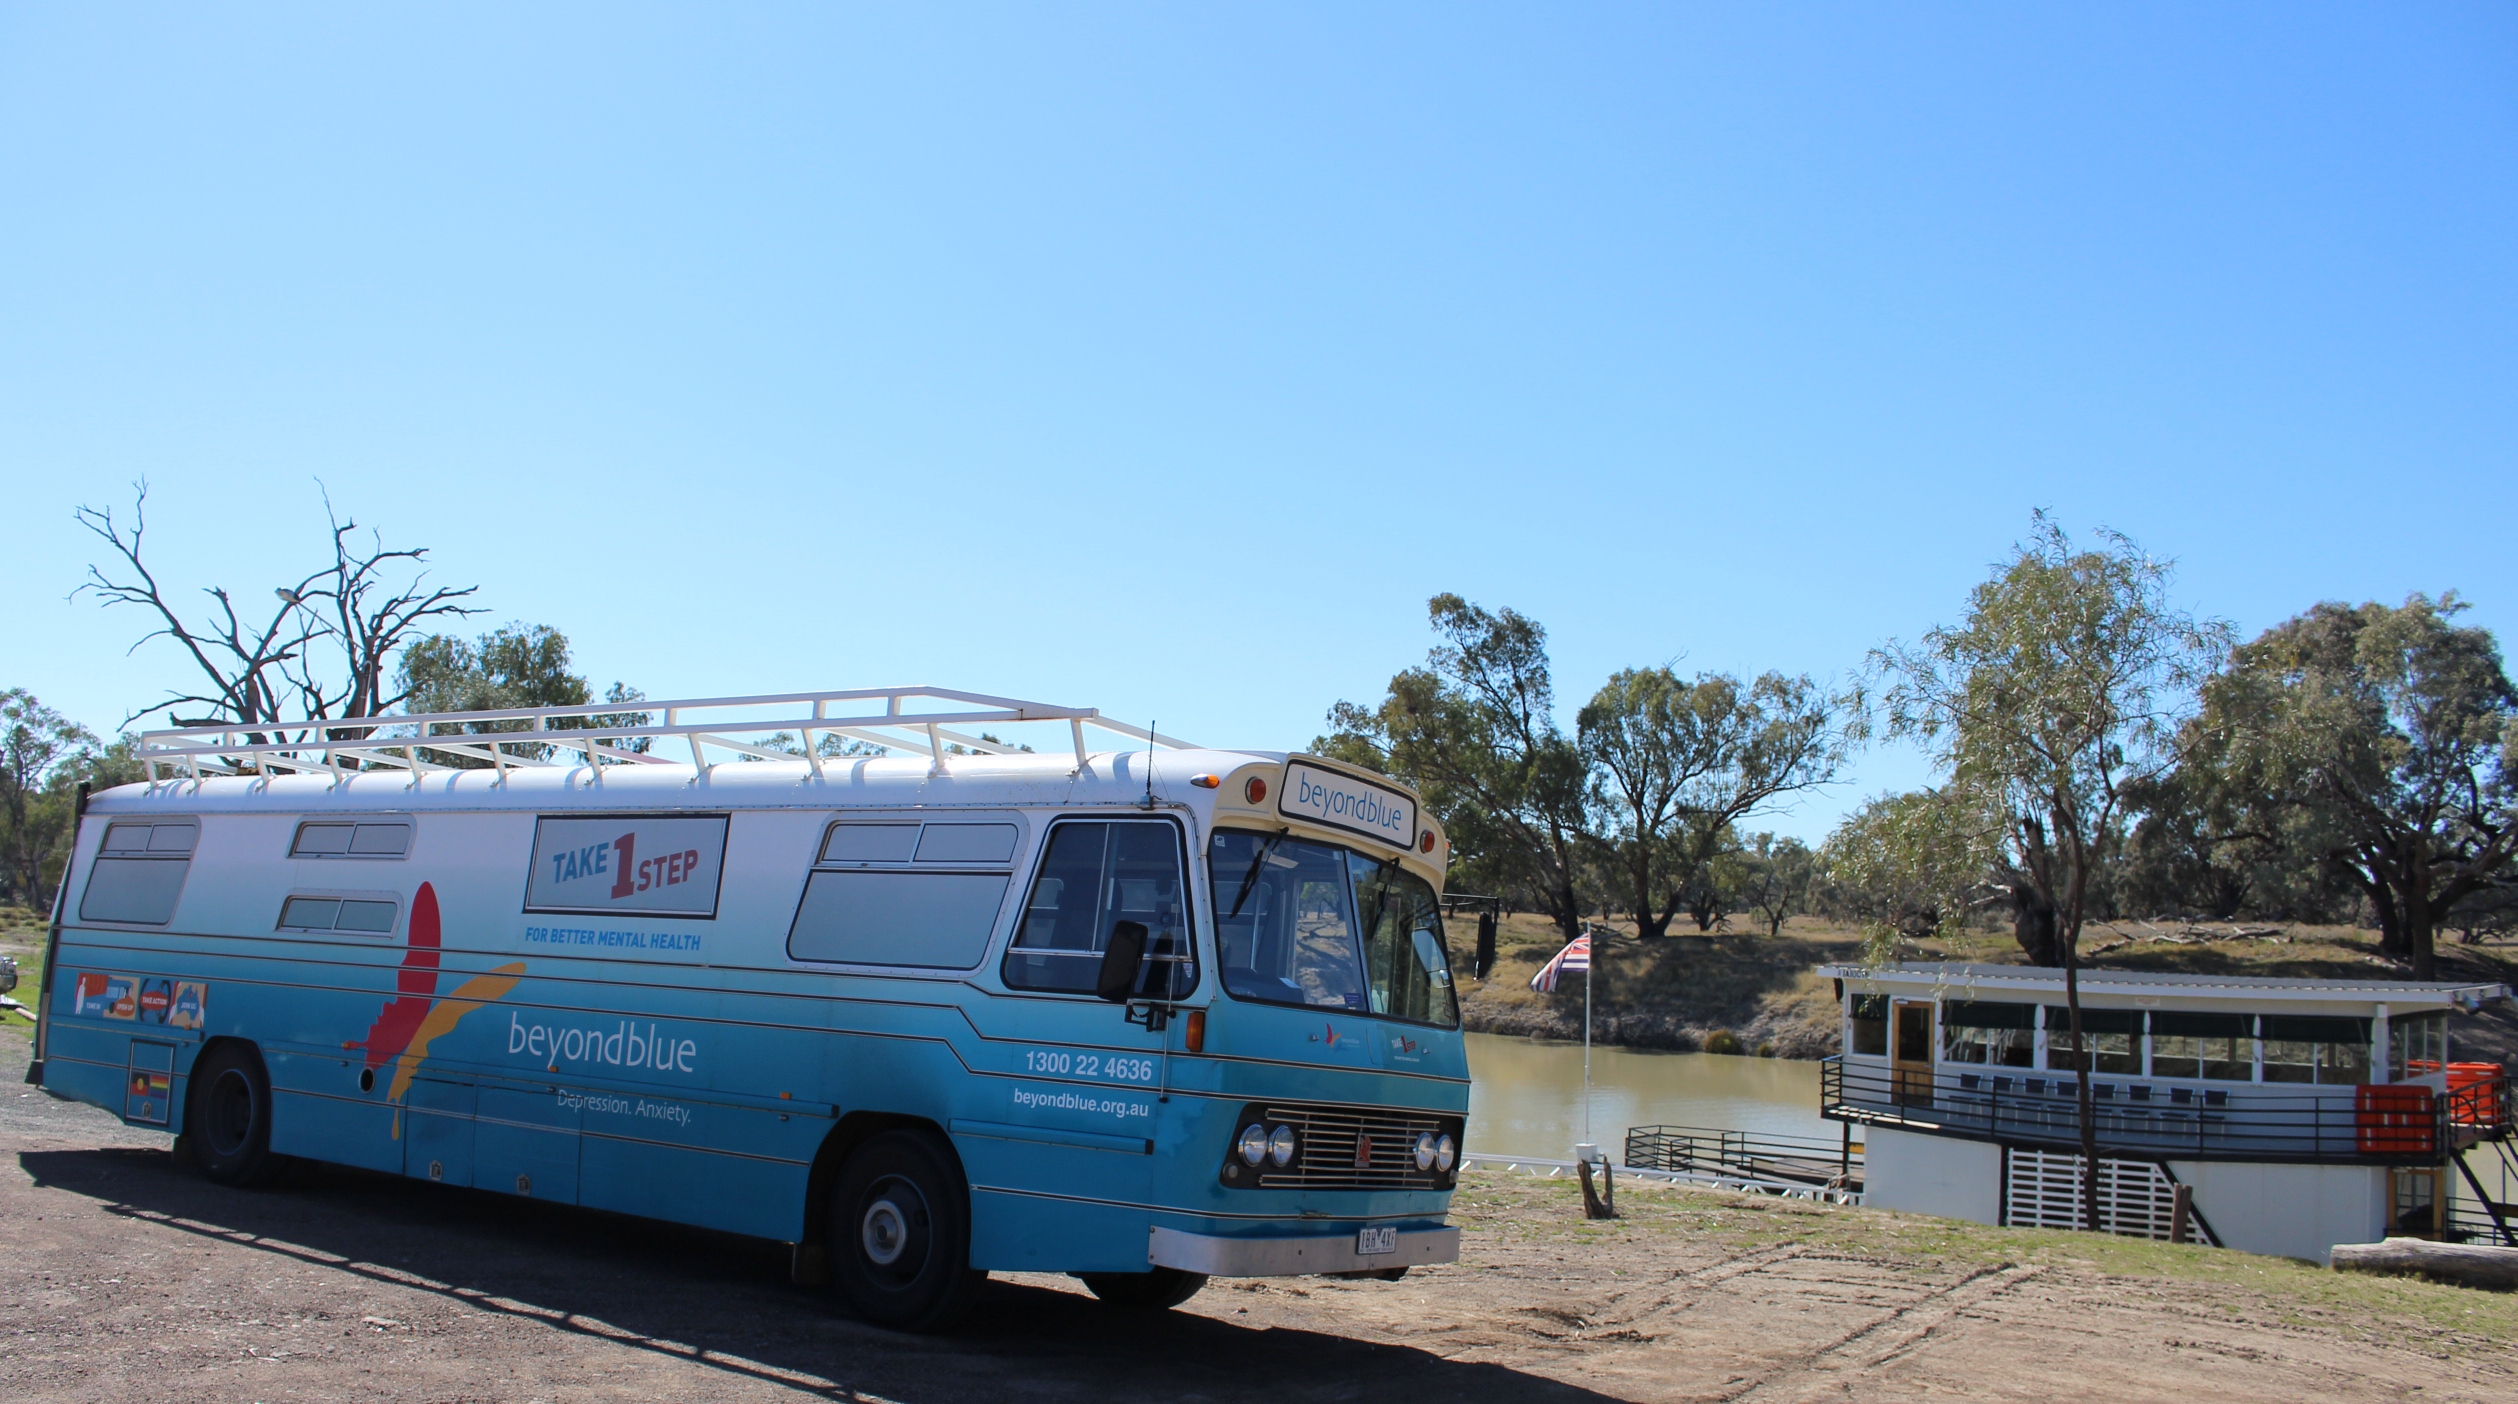 Roadshow Rhonda meets the paddlesteamer PV Jandra on the Darling River in Bourke.